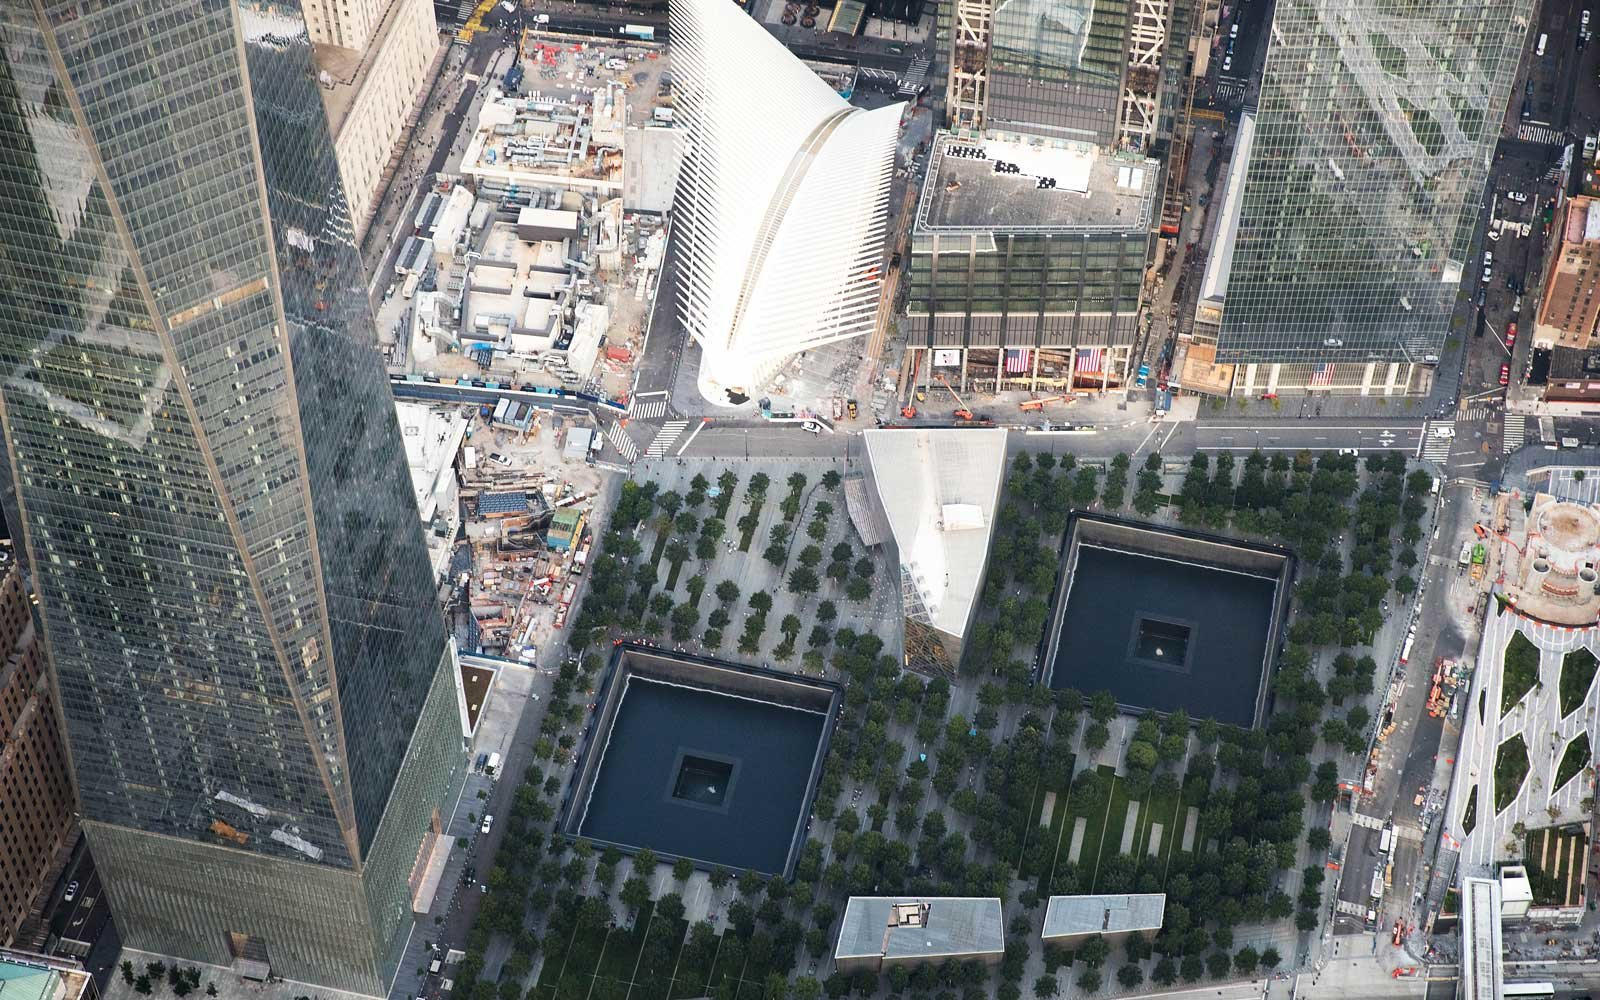 8 Killed In Act Of Terror Near World Trade Center In